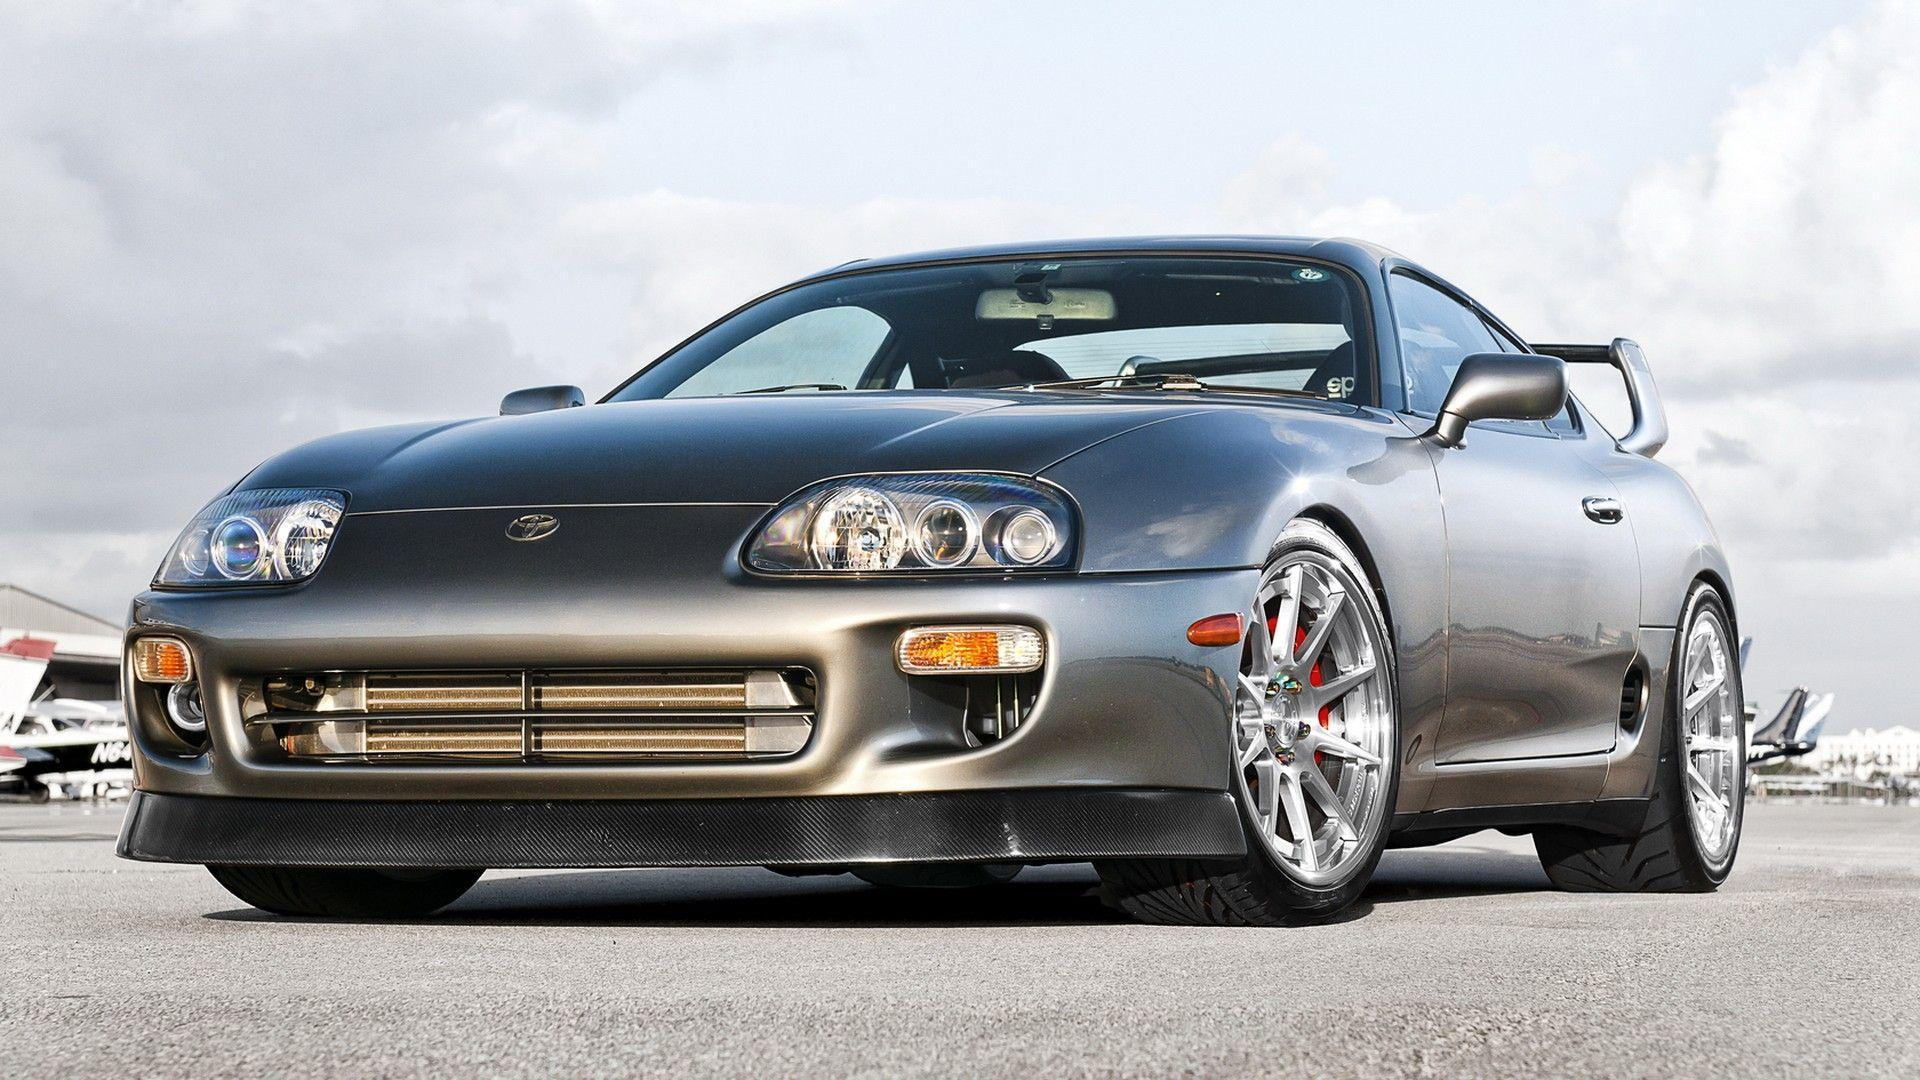 Silver Toyota Supra Front Angle 30194 High Resolution